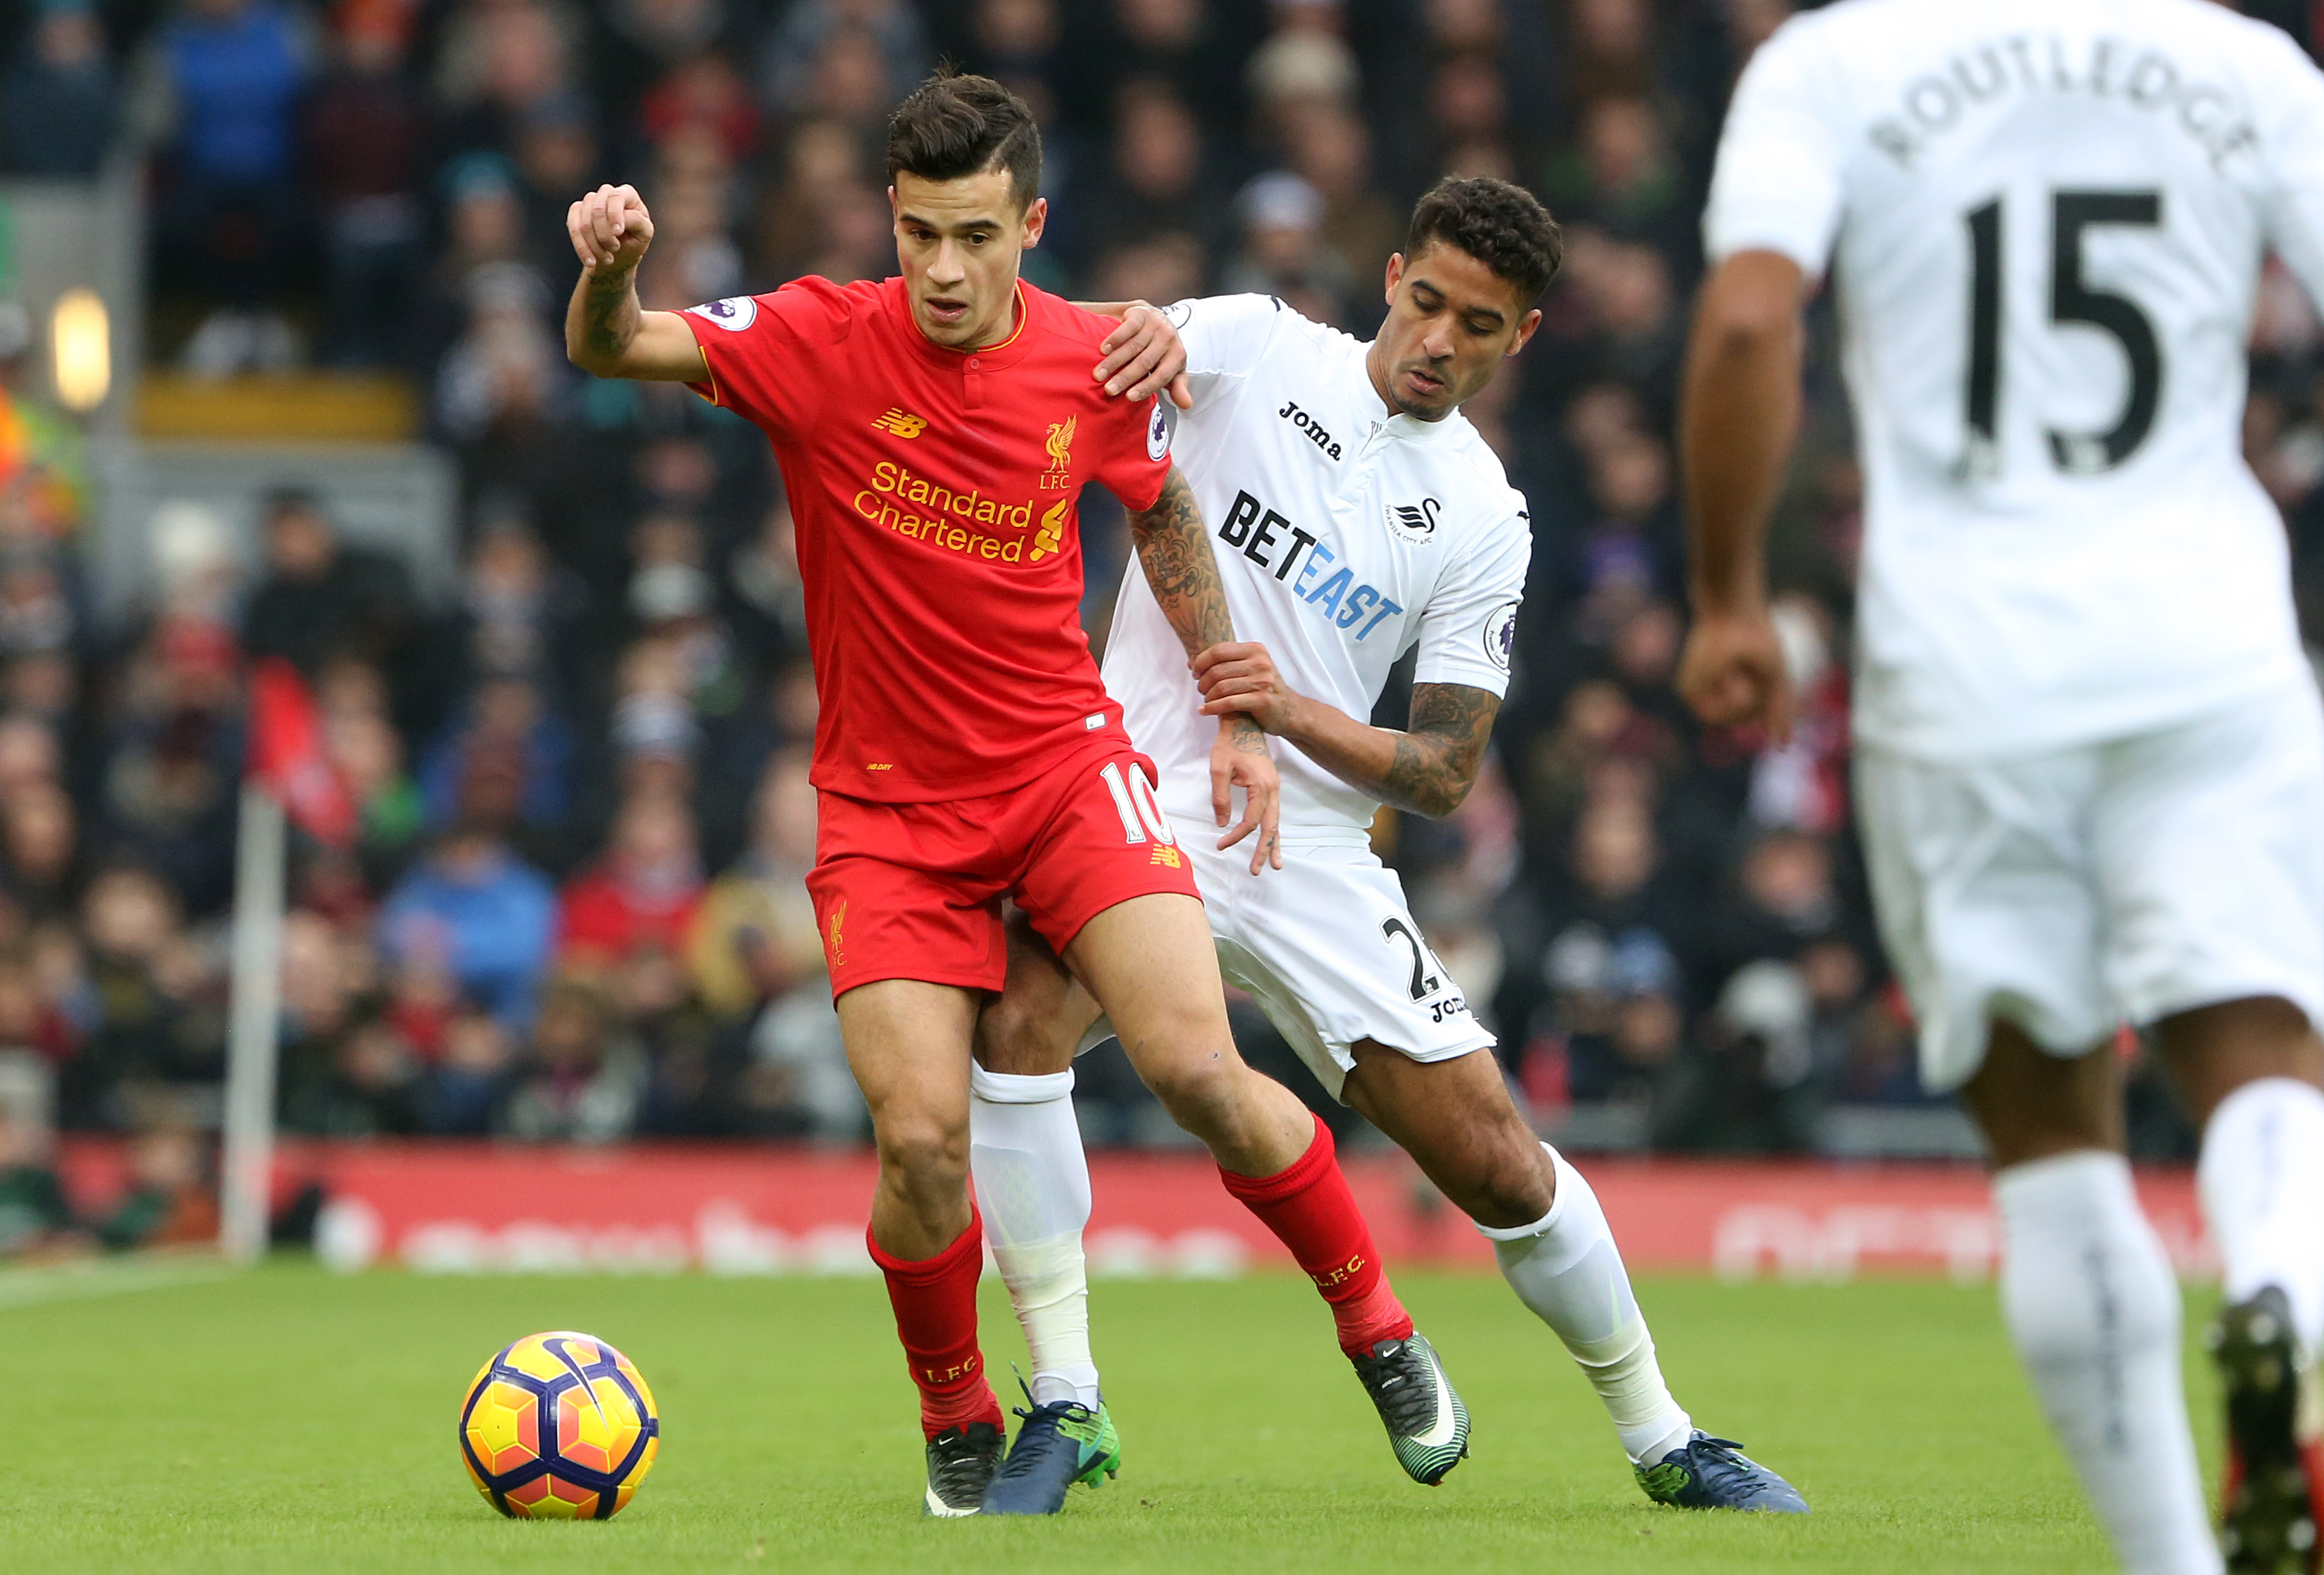 LIVERPOOL, ENGLAND - JANUARY 21: Philippe Coutinho of Liverpool is challenged by Kyle Naughton of Swansea City during the Premier League match between Liverpool and Swansea City at Anfield on January 21, 2017 in Liverpool, England. (Photo by Athena Pictures/Getty Images)